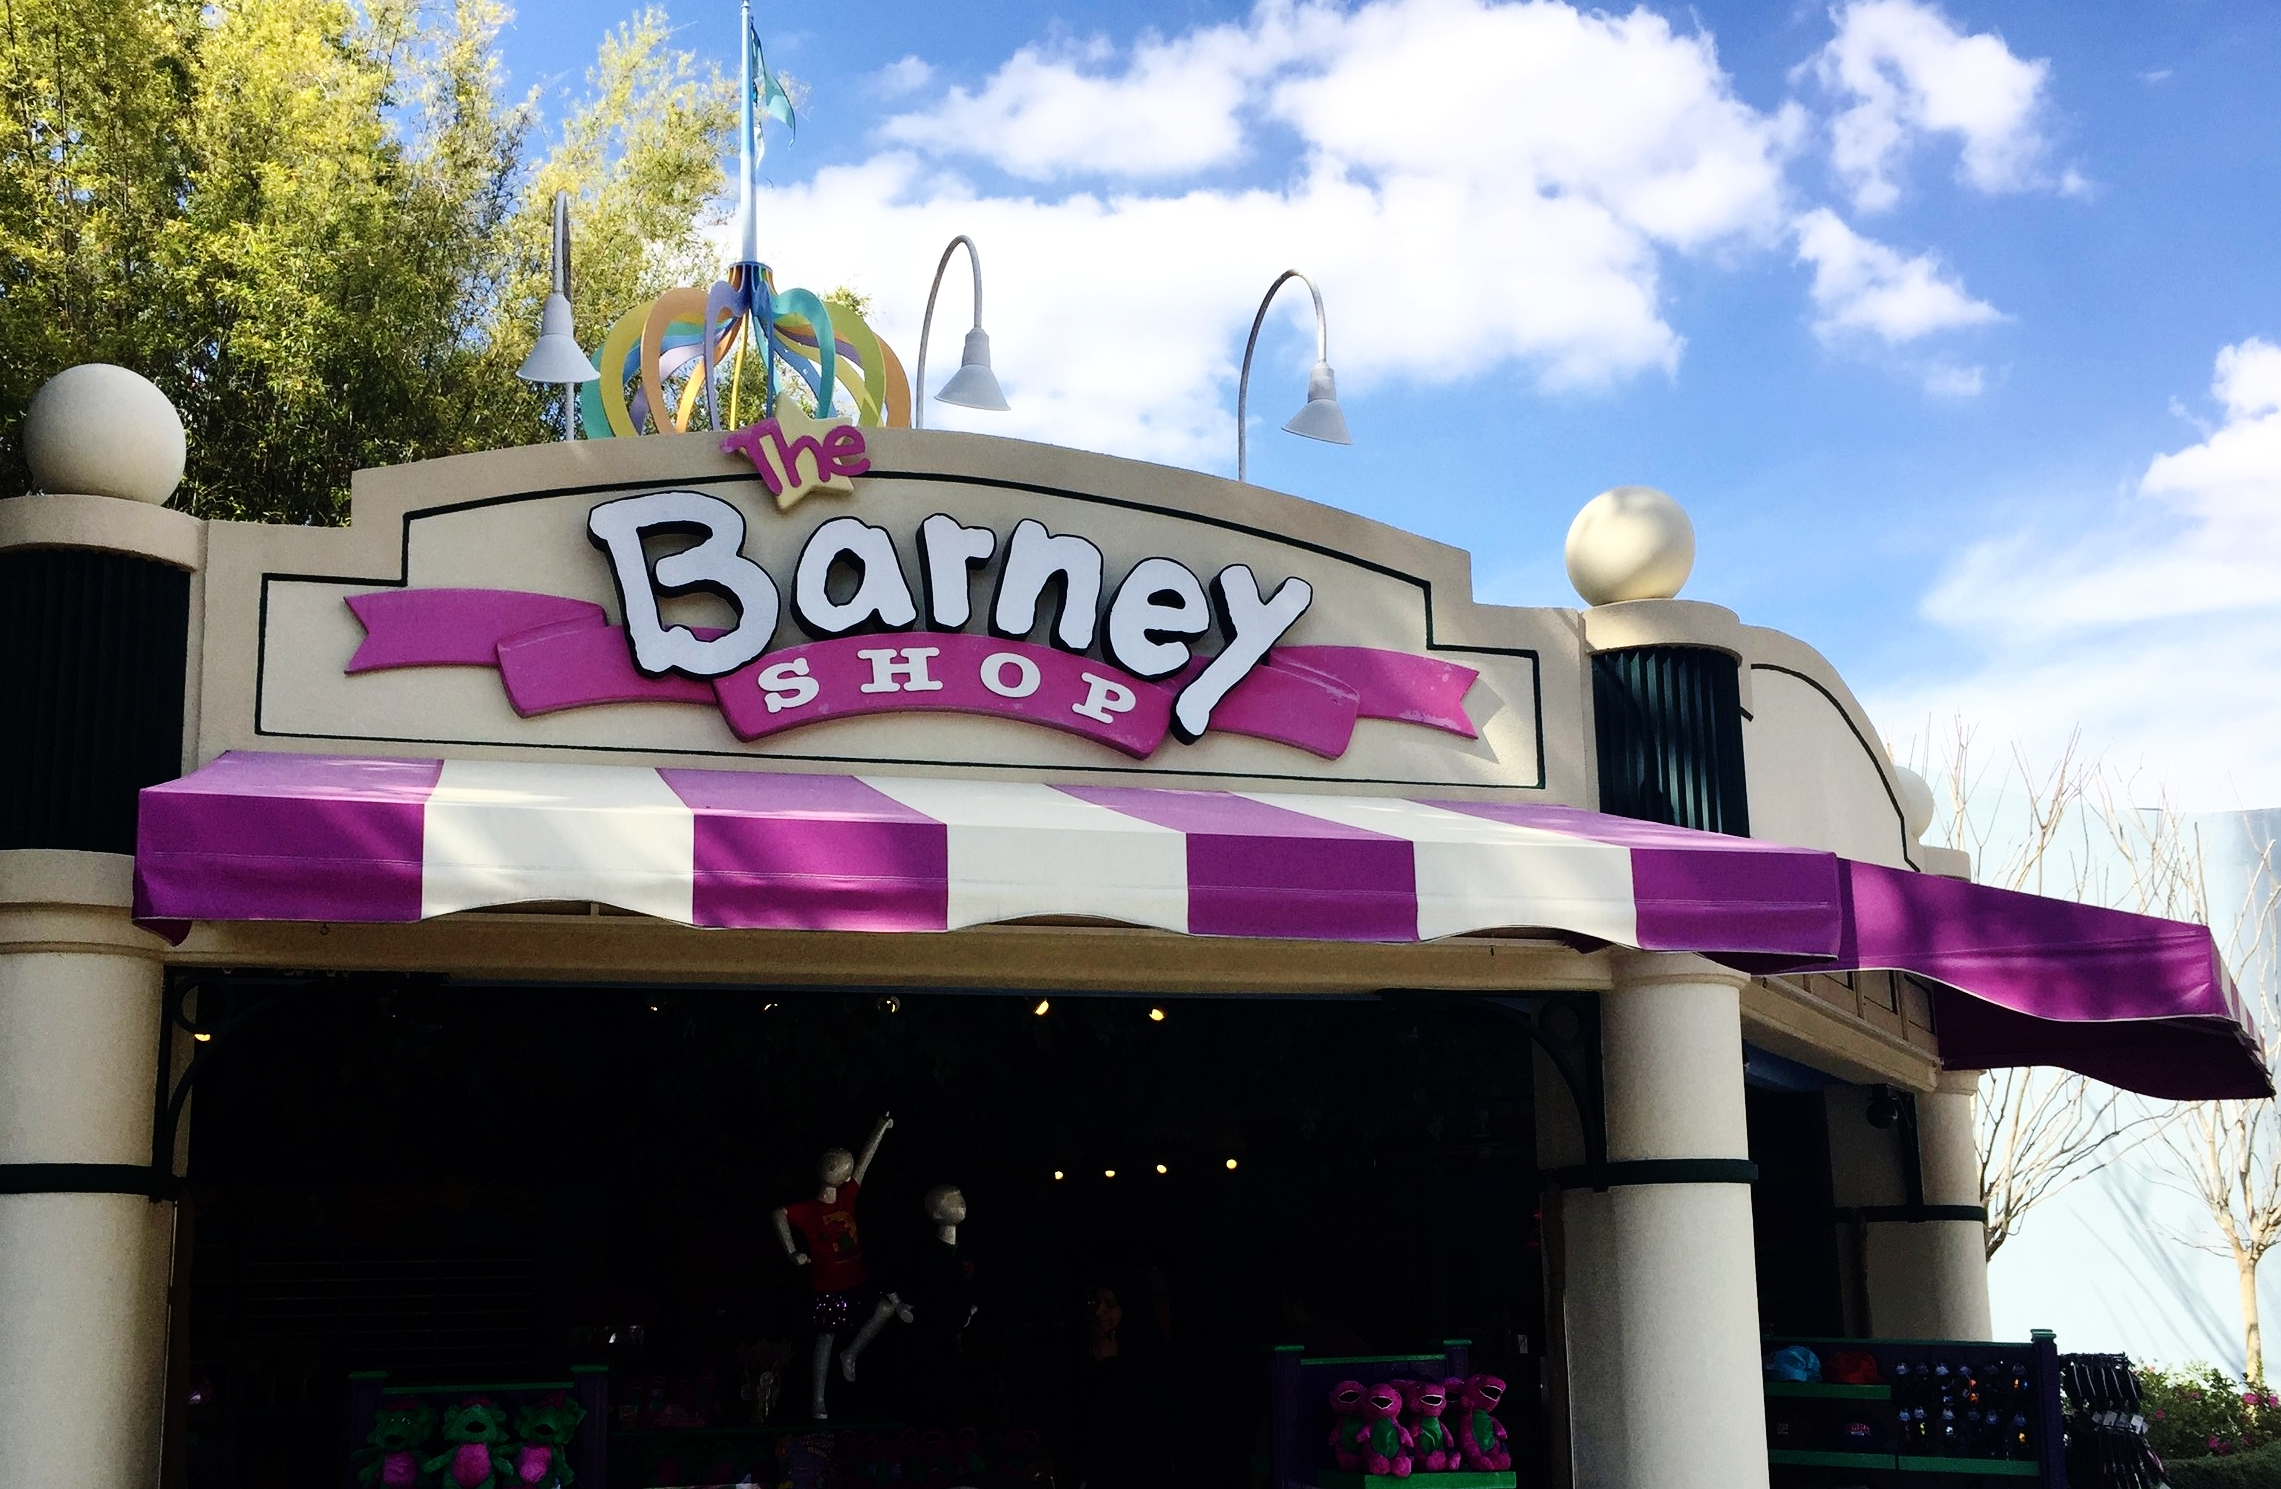 The Barney Shop sells Barney themed merchandise.